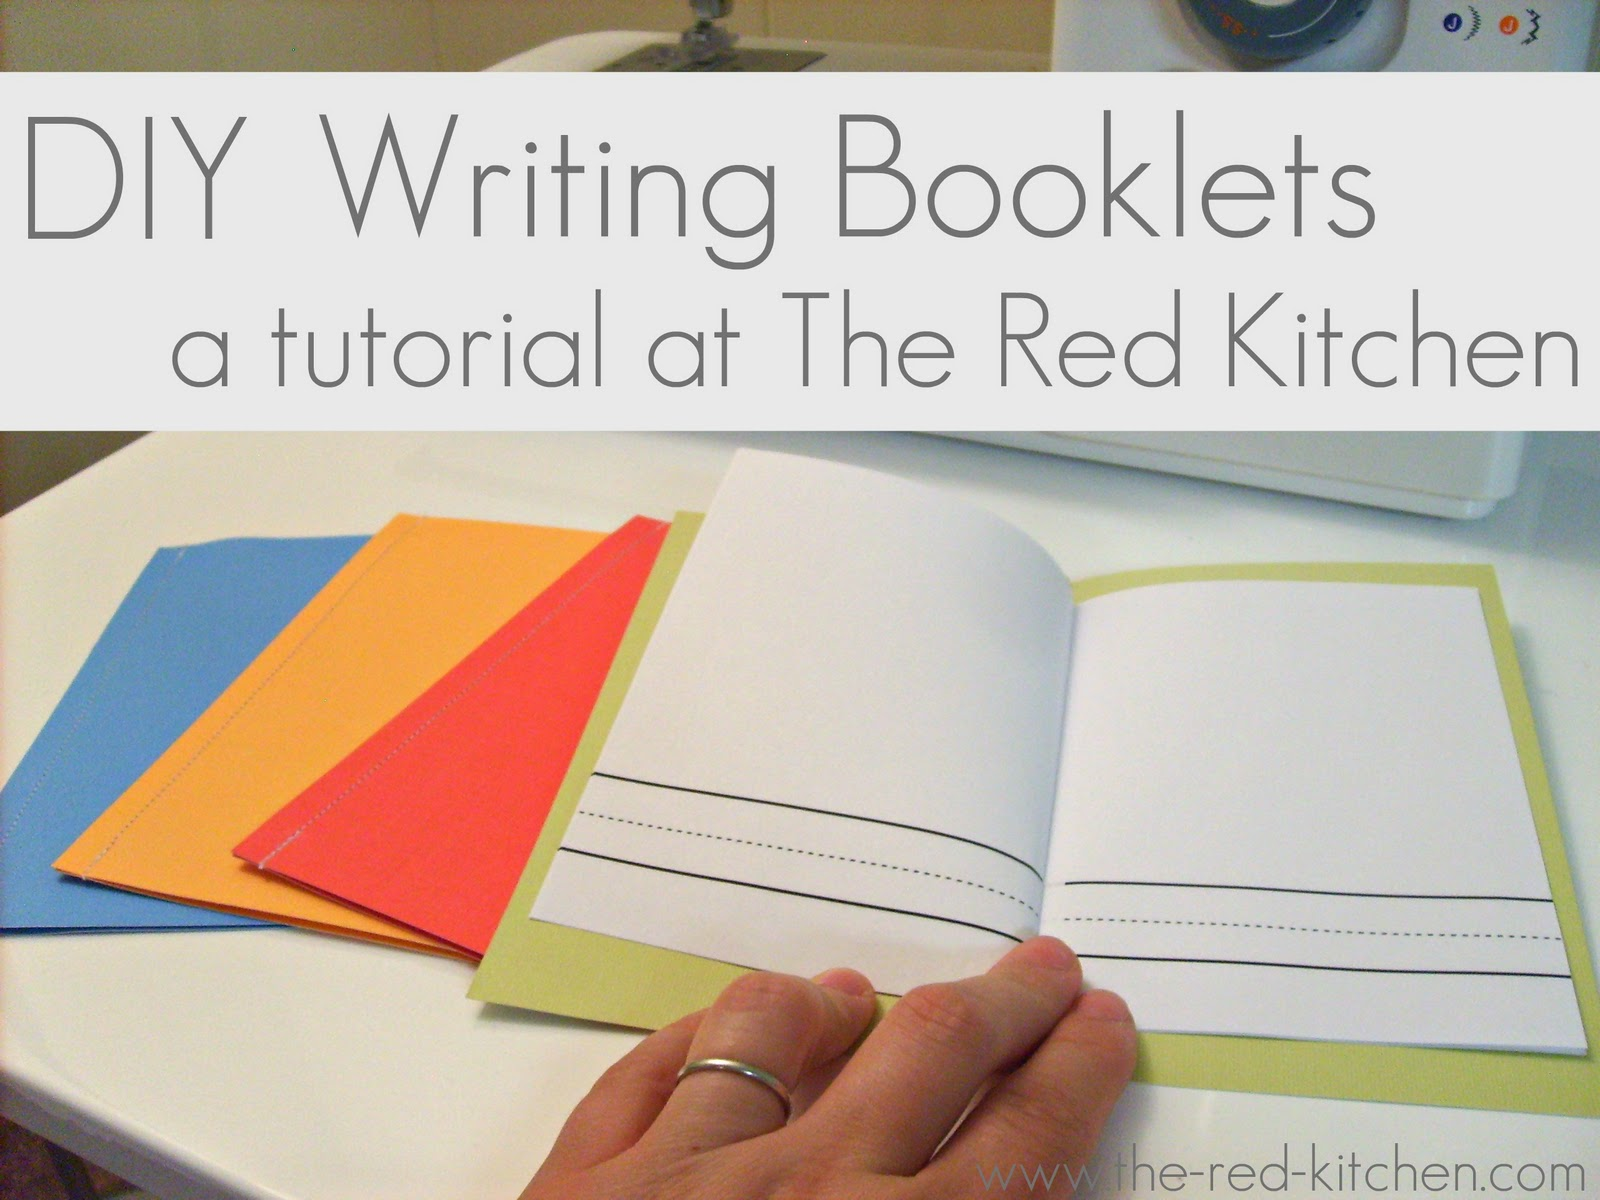 The Red Kitchen Diy Writing Booklets For Preschool And Home School With Free Writing Page